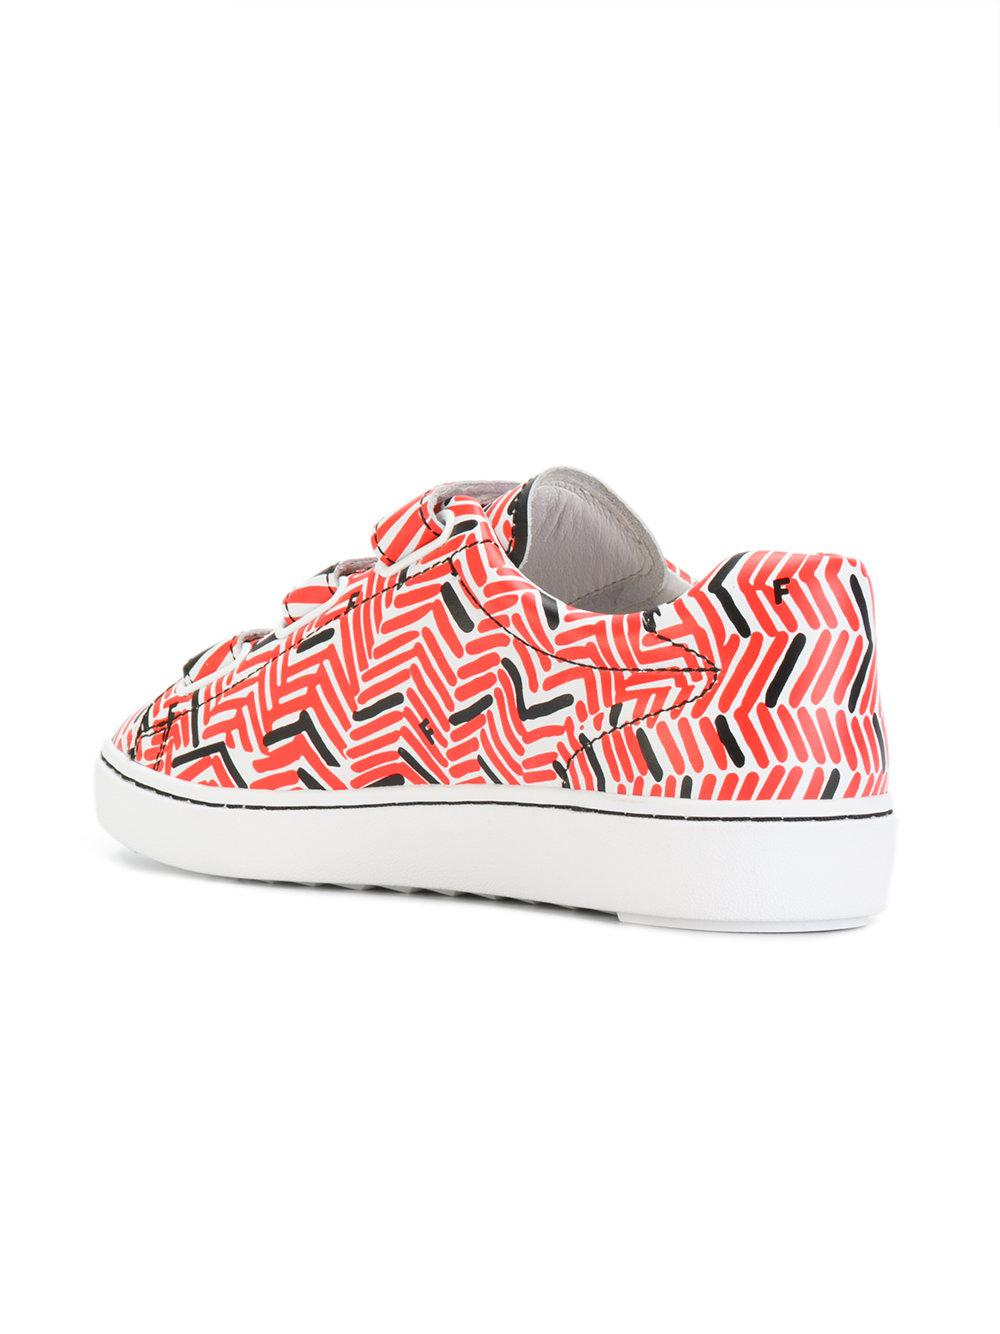 touch-strap printed sneakers - Multicolour Ash K5d8dQr